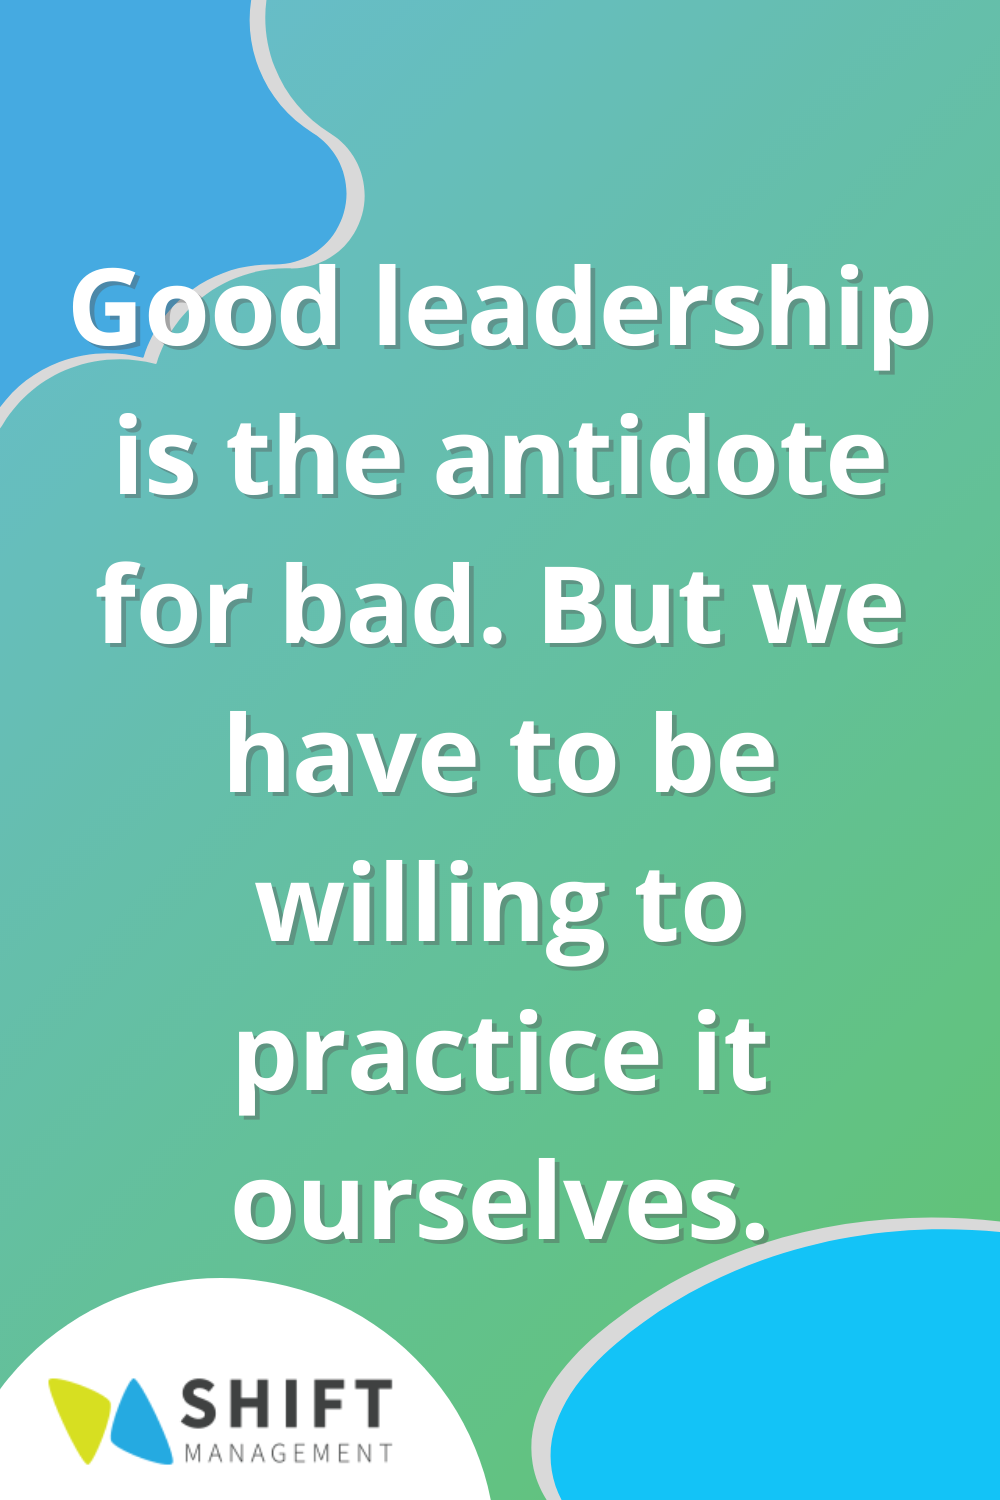 Good leadership is the antidote for bad but we have to be willing to practice it ourselves